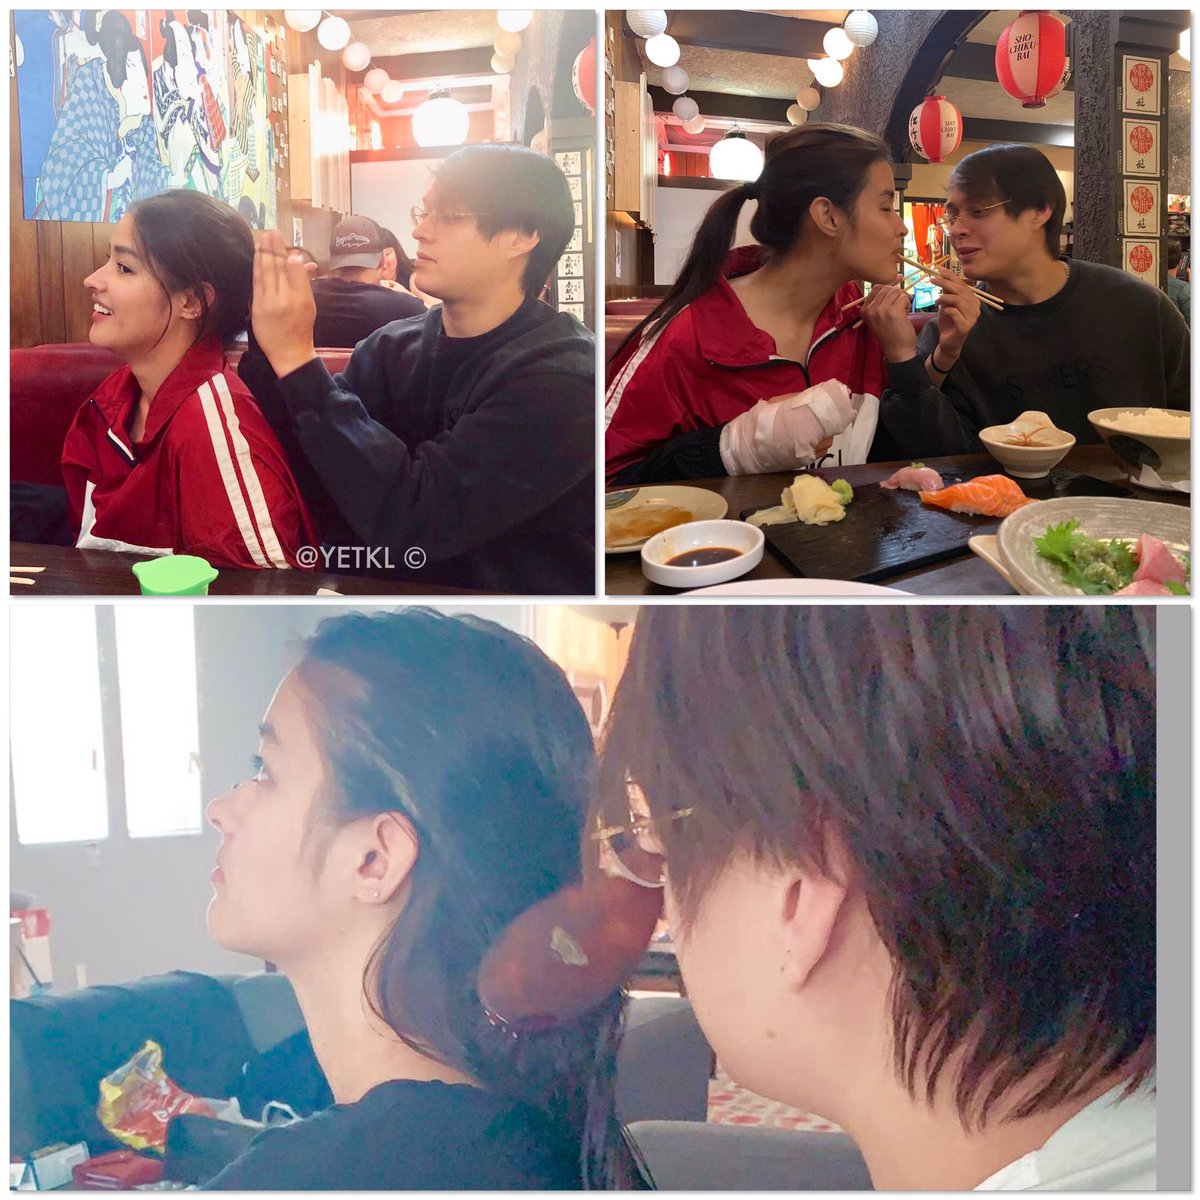 Quen is the ultimate OPPA  Better than the kilig kdrama talaga etong LizQuen. They have their own unique lovestory. Parang fairytale.   #LabanLizquen <br>http://pic.twitter.com/q8ng4vSOYA